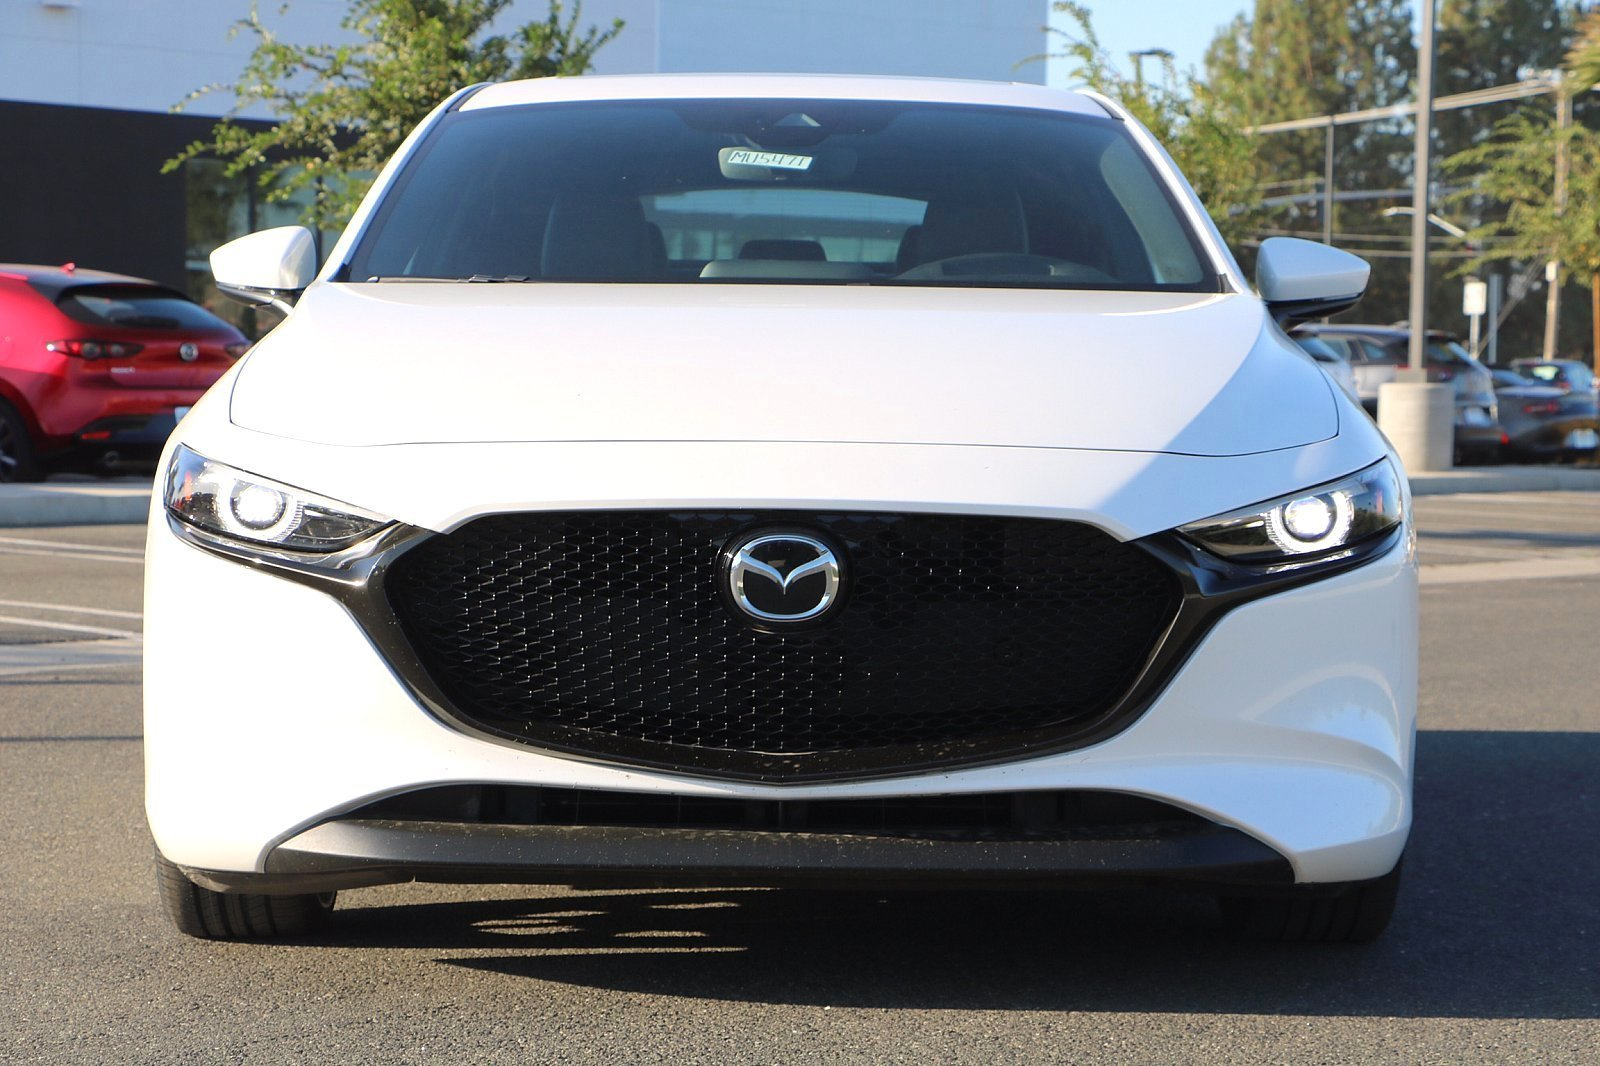 Pre-Owned 2019 Mazda3 Hatchback with Premium Pkg